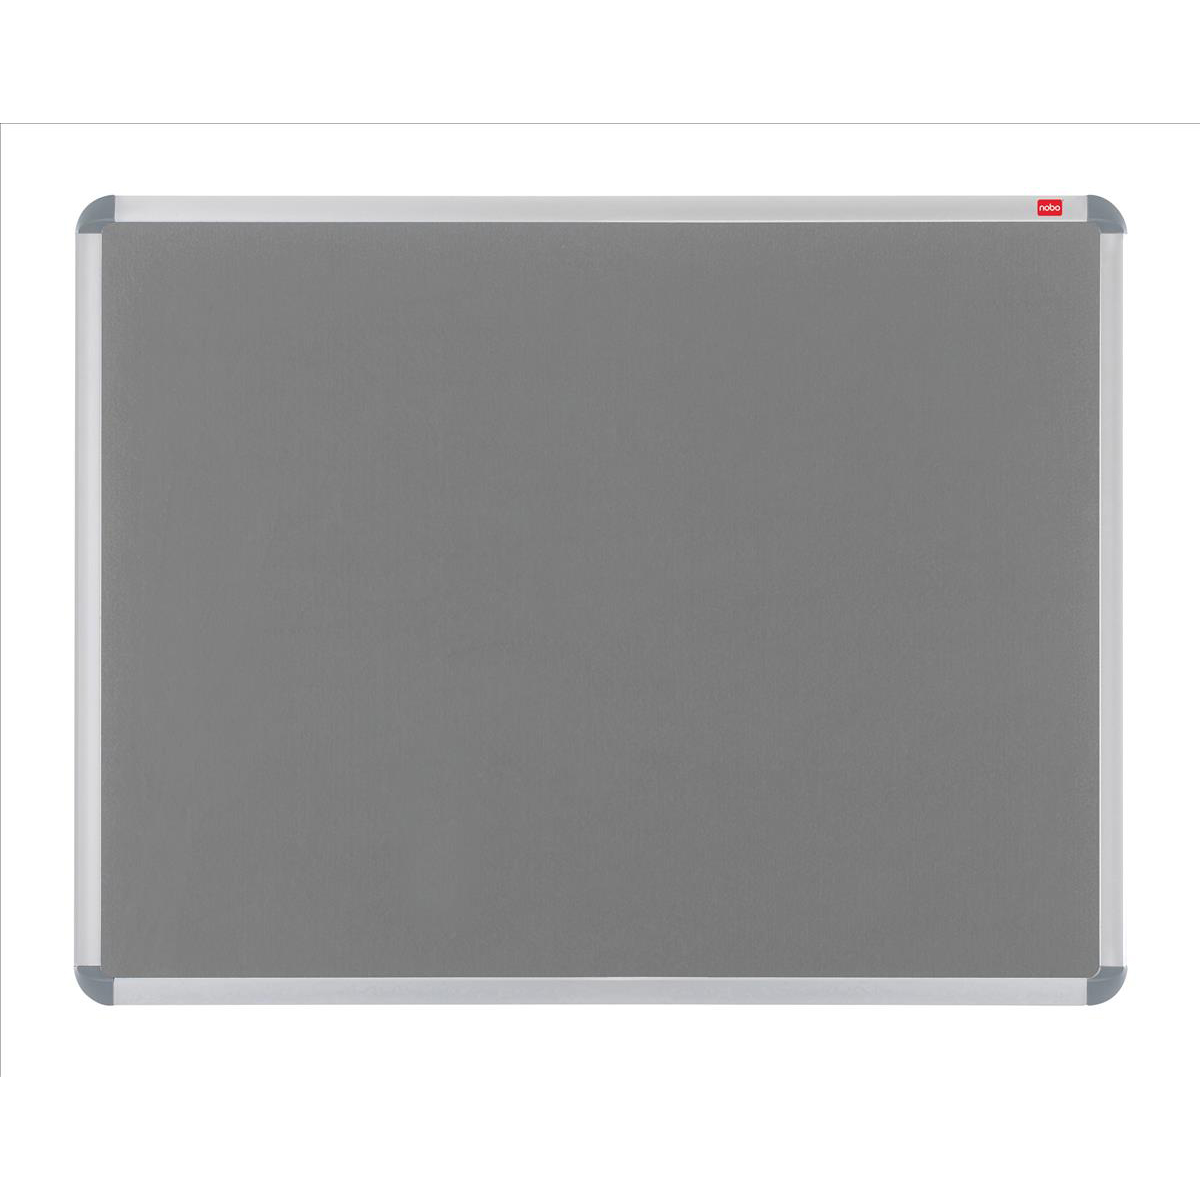 Nobo Prestige Felt Noticeboard with Fixings and Aluminium Frame W1200xH900mm Grey Ref 30230158